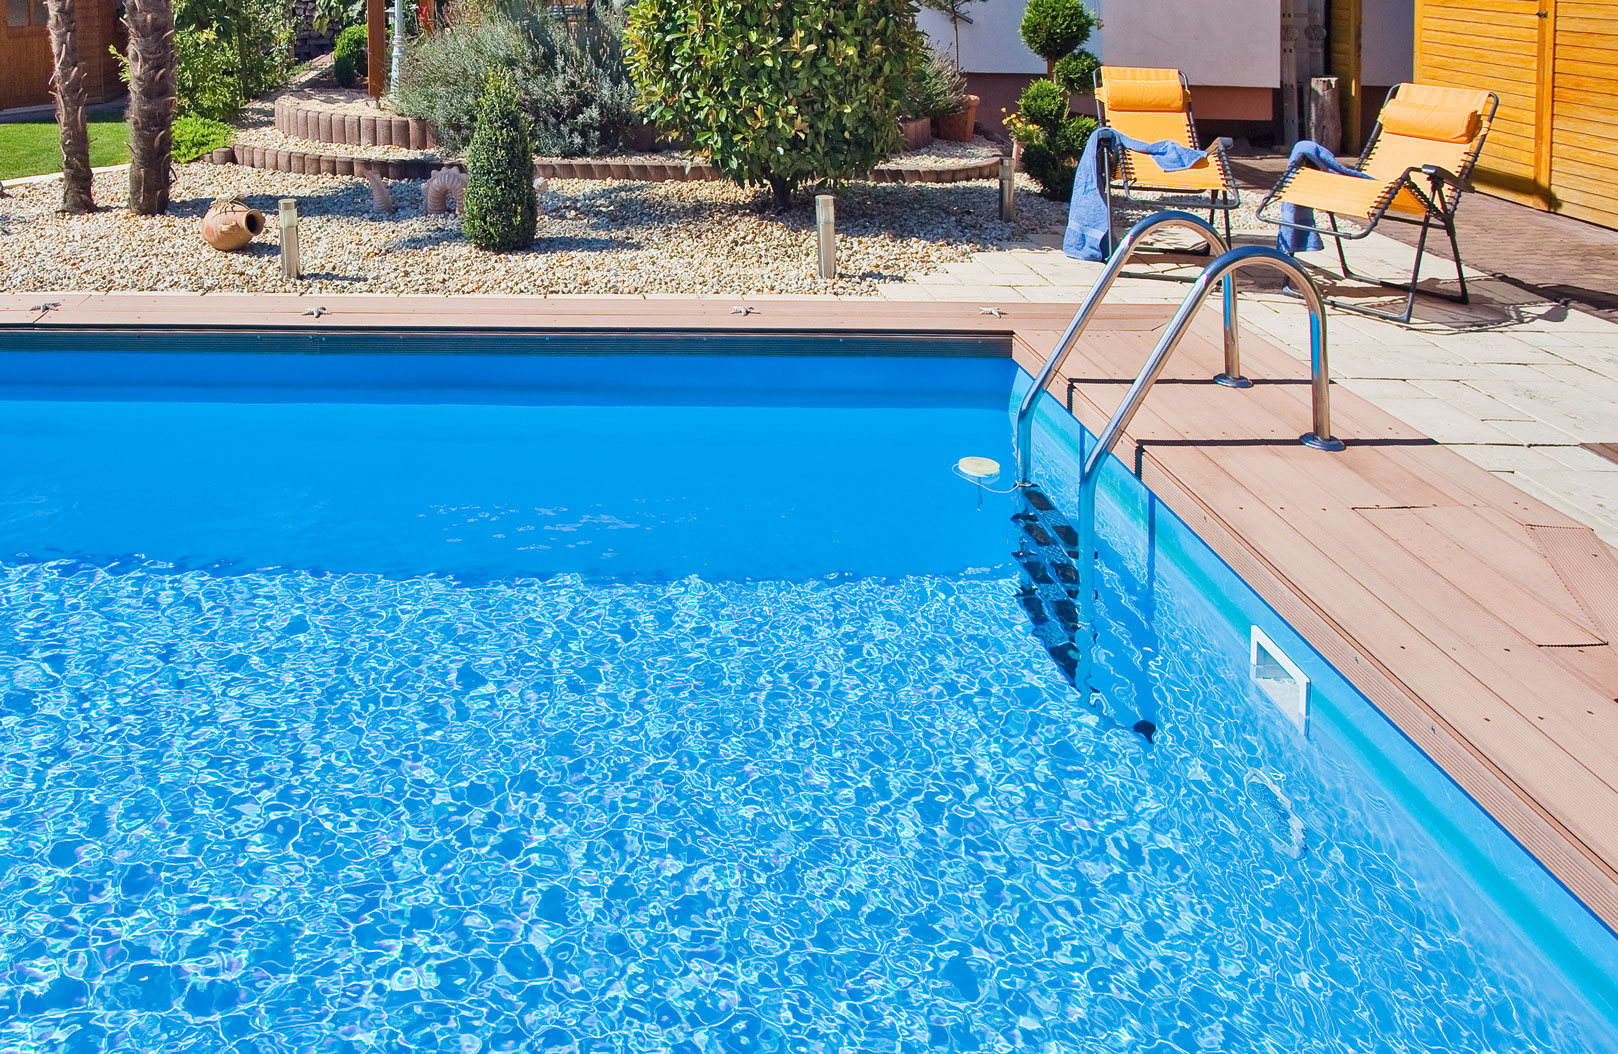 Kleiner Gfk Pool Home - Poolmaris